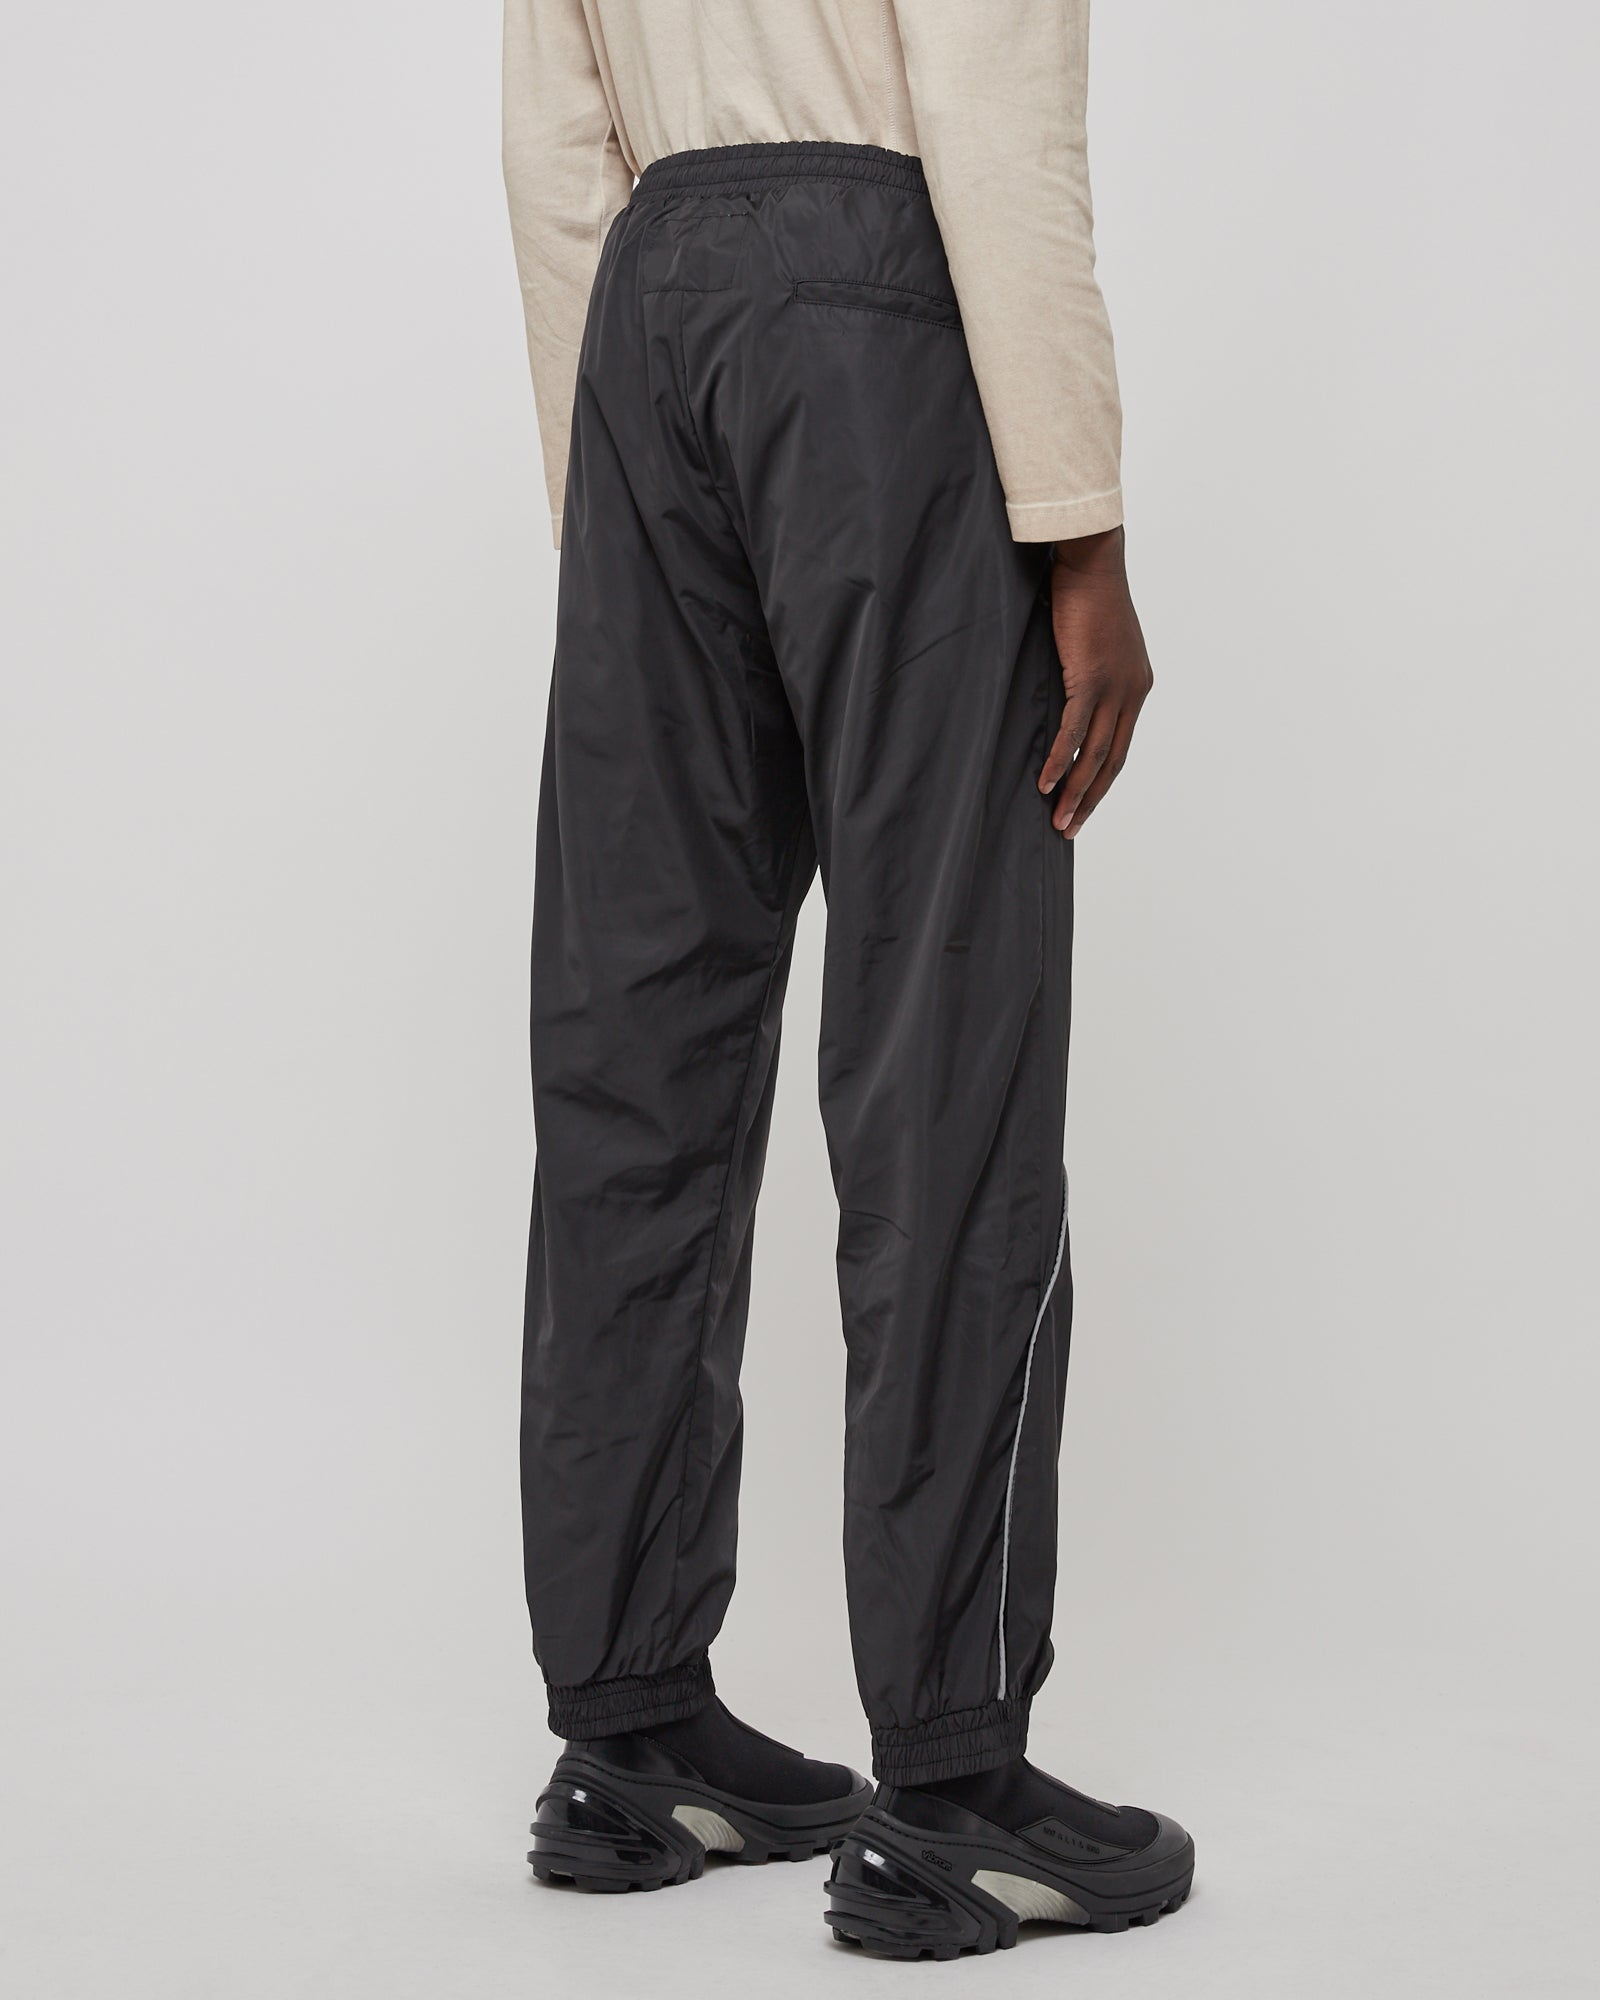 Piping Pocket Pant in Black